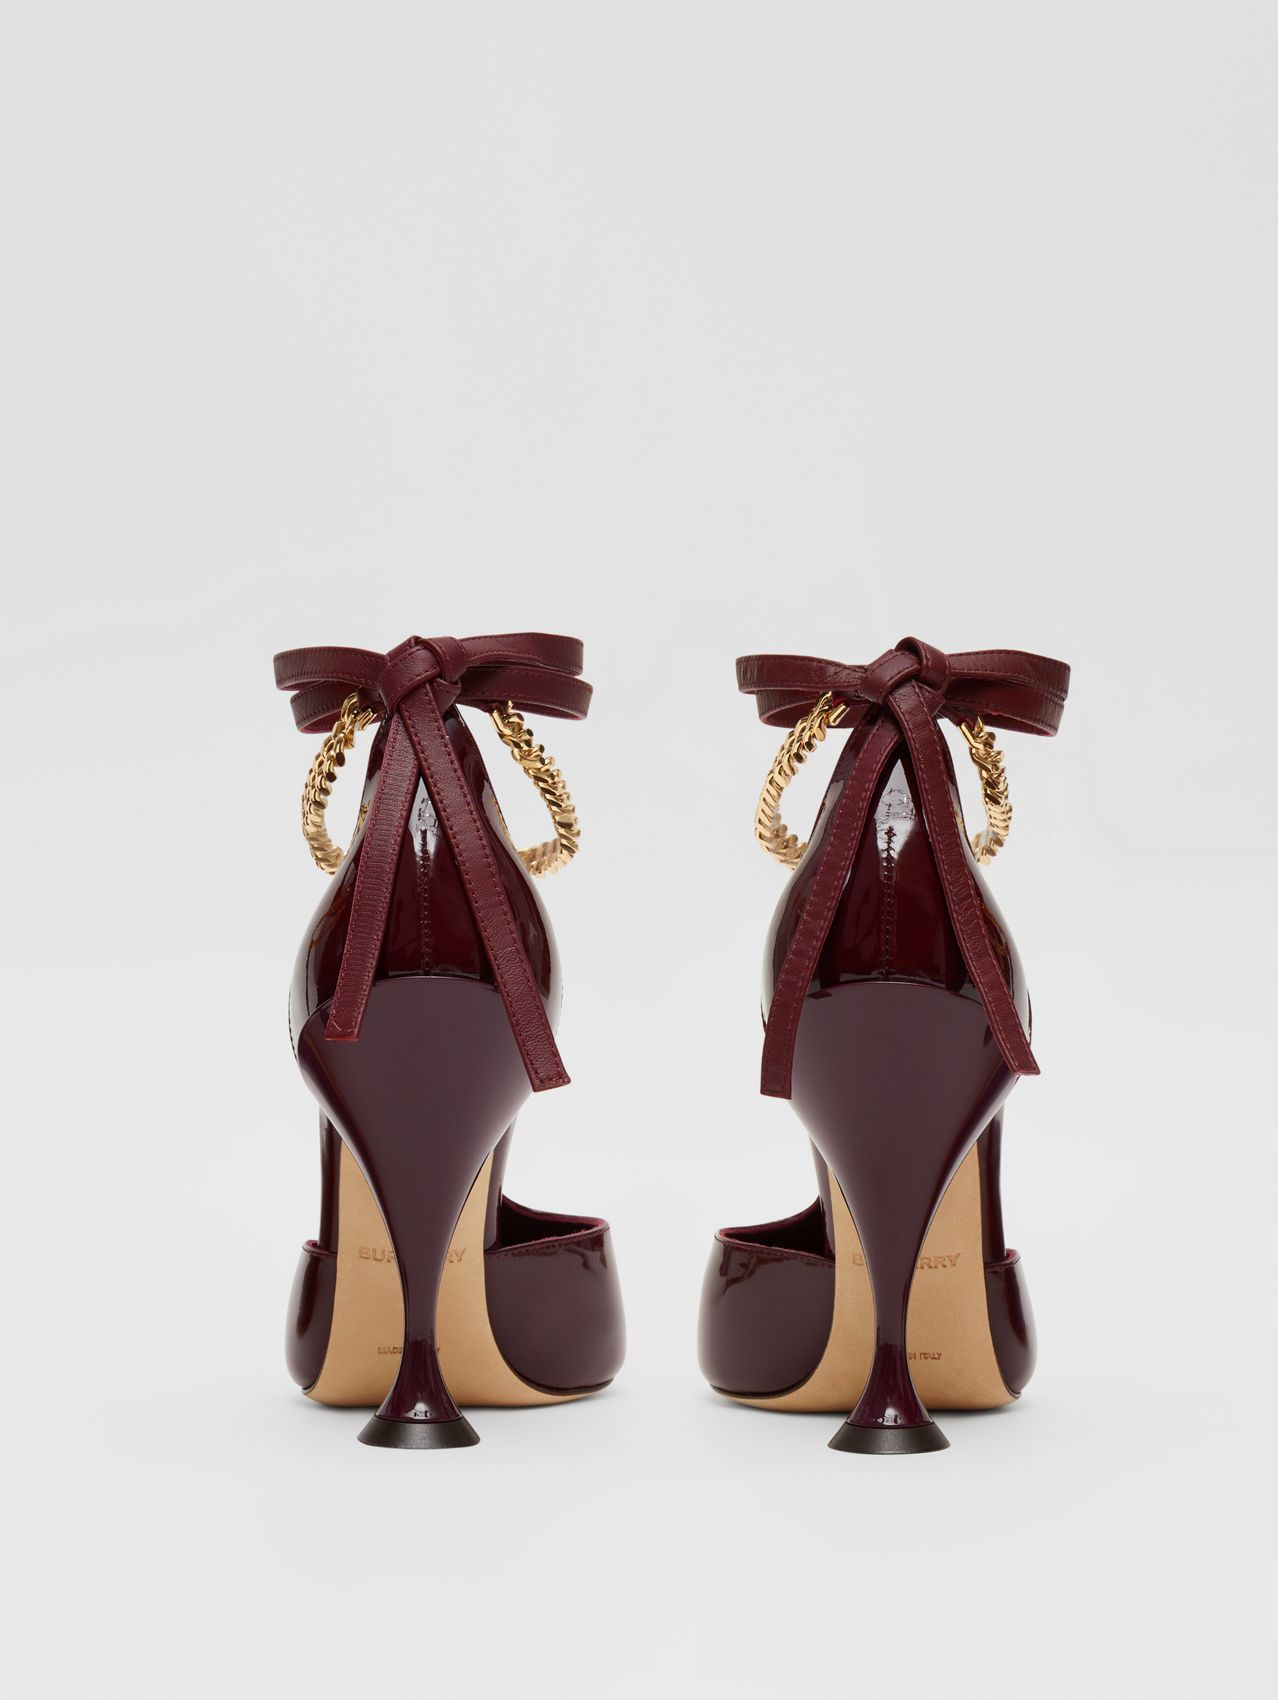 Chain Detail Patent Leather Pumps (Oxblood)